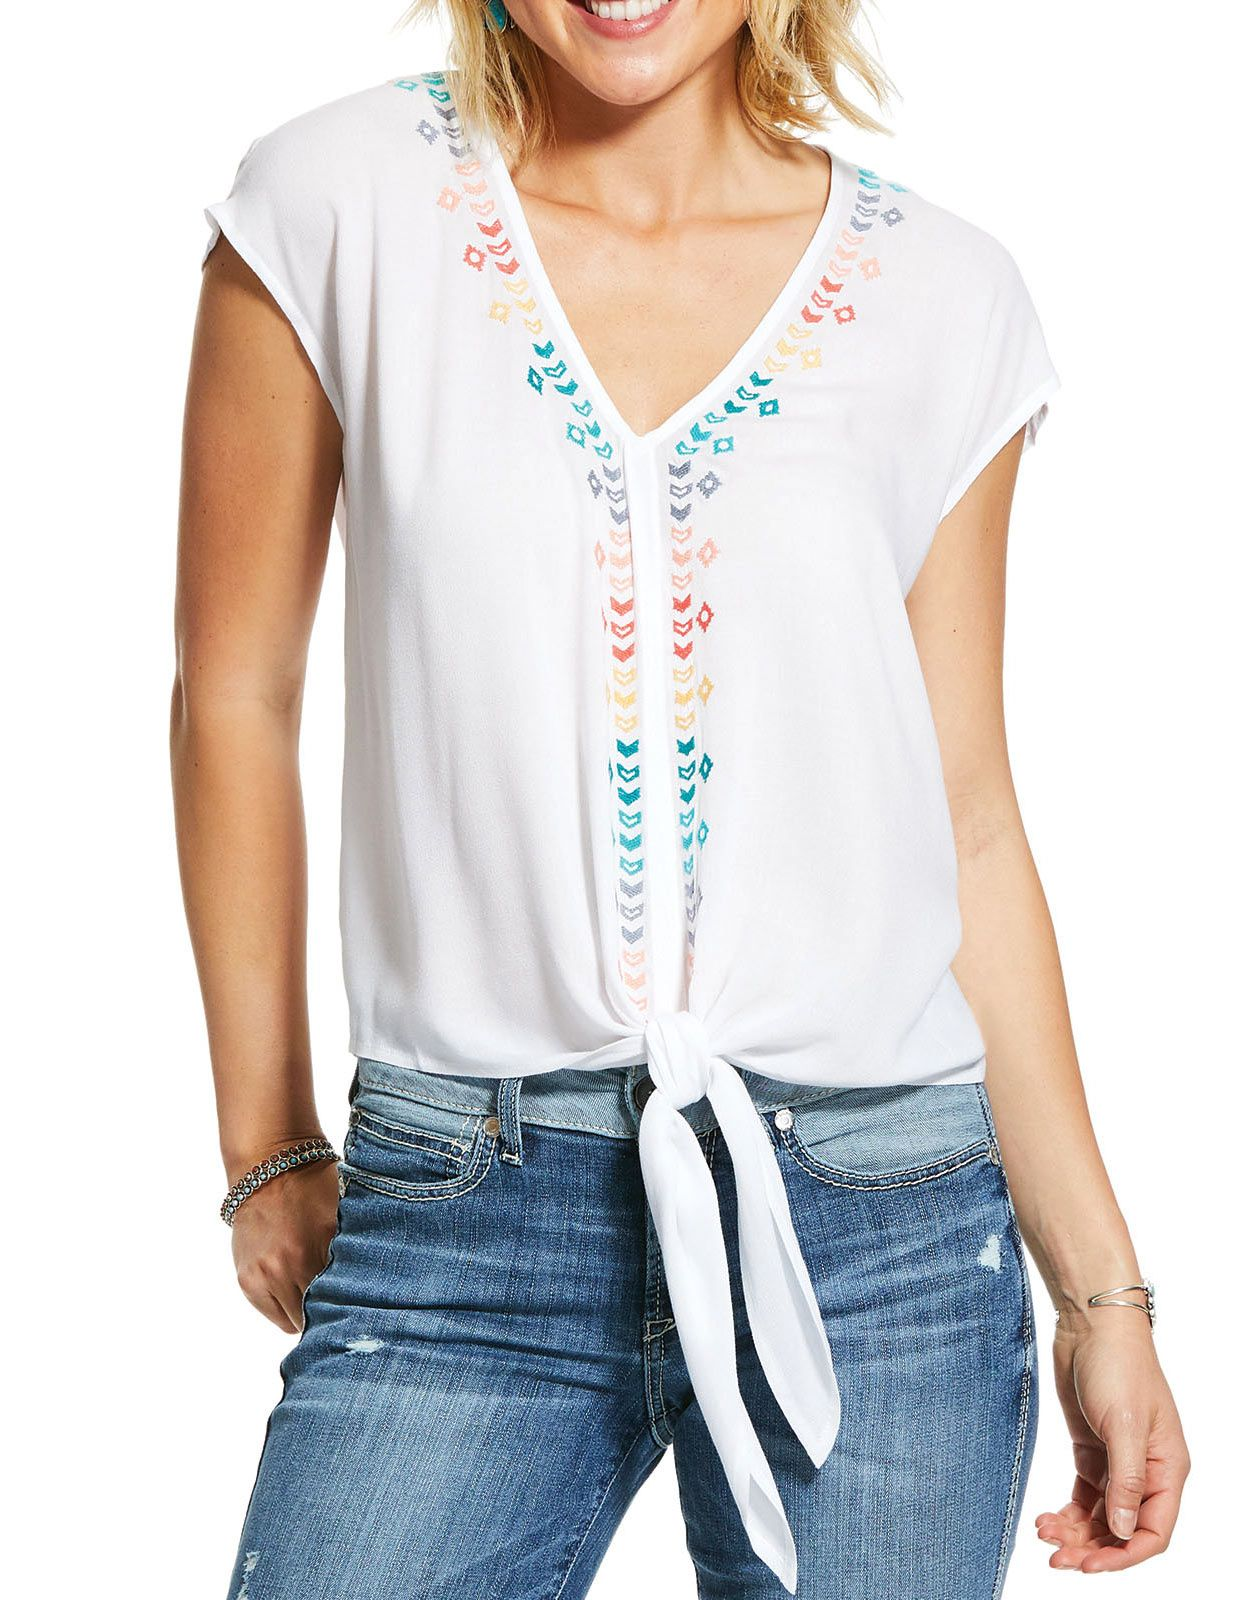 Ariat Women's Bonnie Short Sleeve Embroidered Top - White